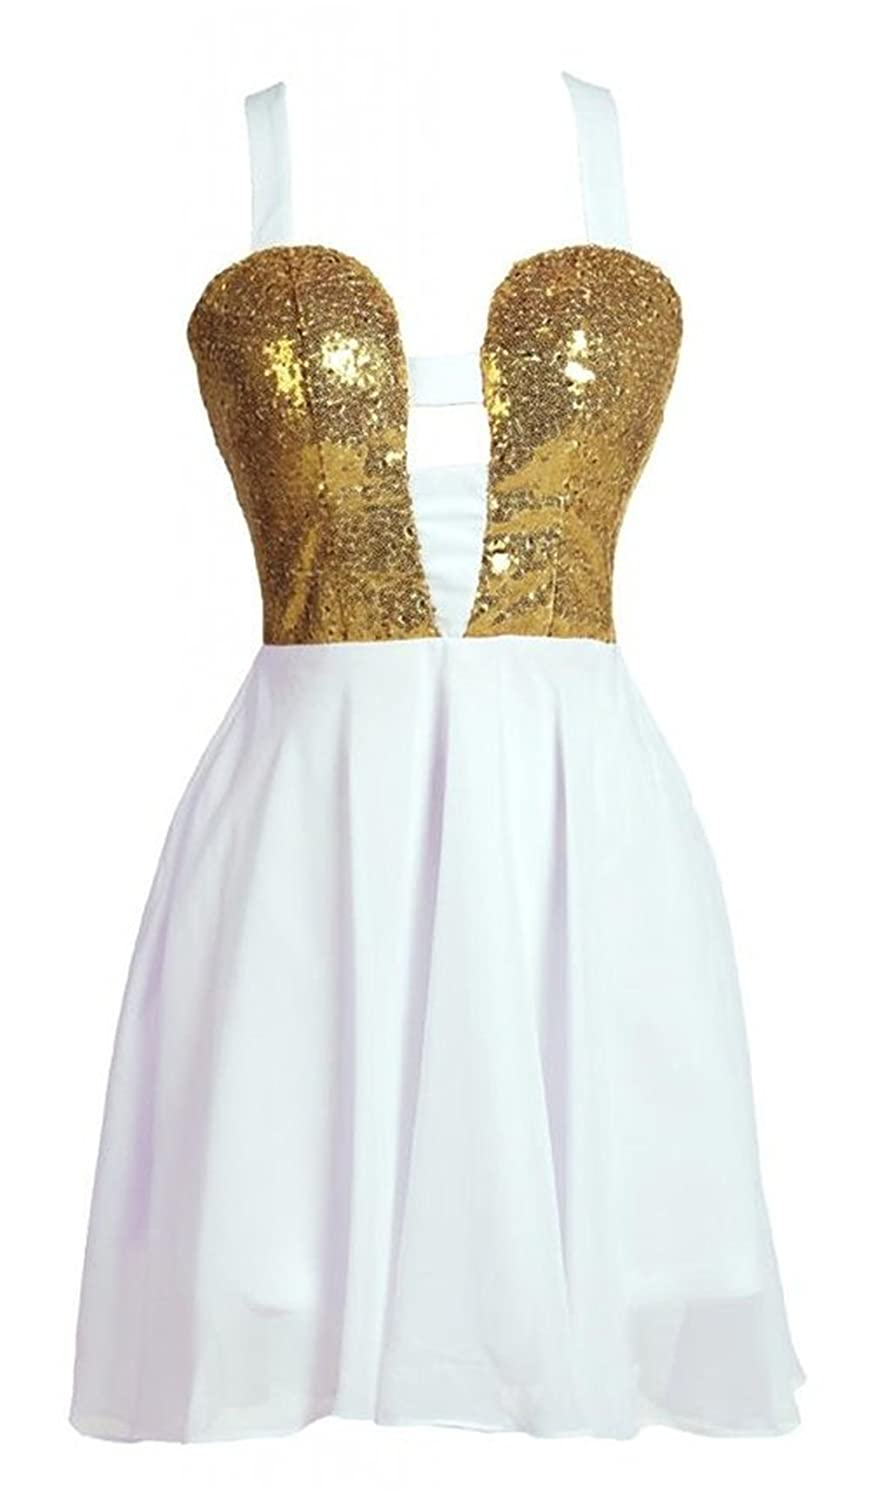 Queenworld Sweetheart Sequins Short Prom Dress Cocktail Dresses US-8 Yellow